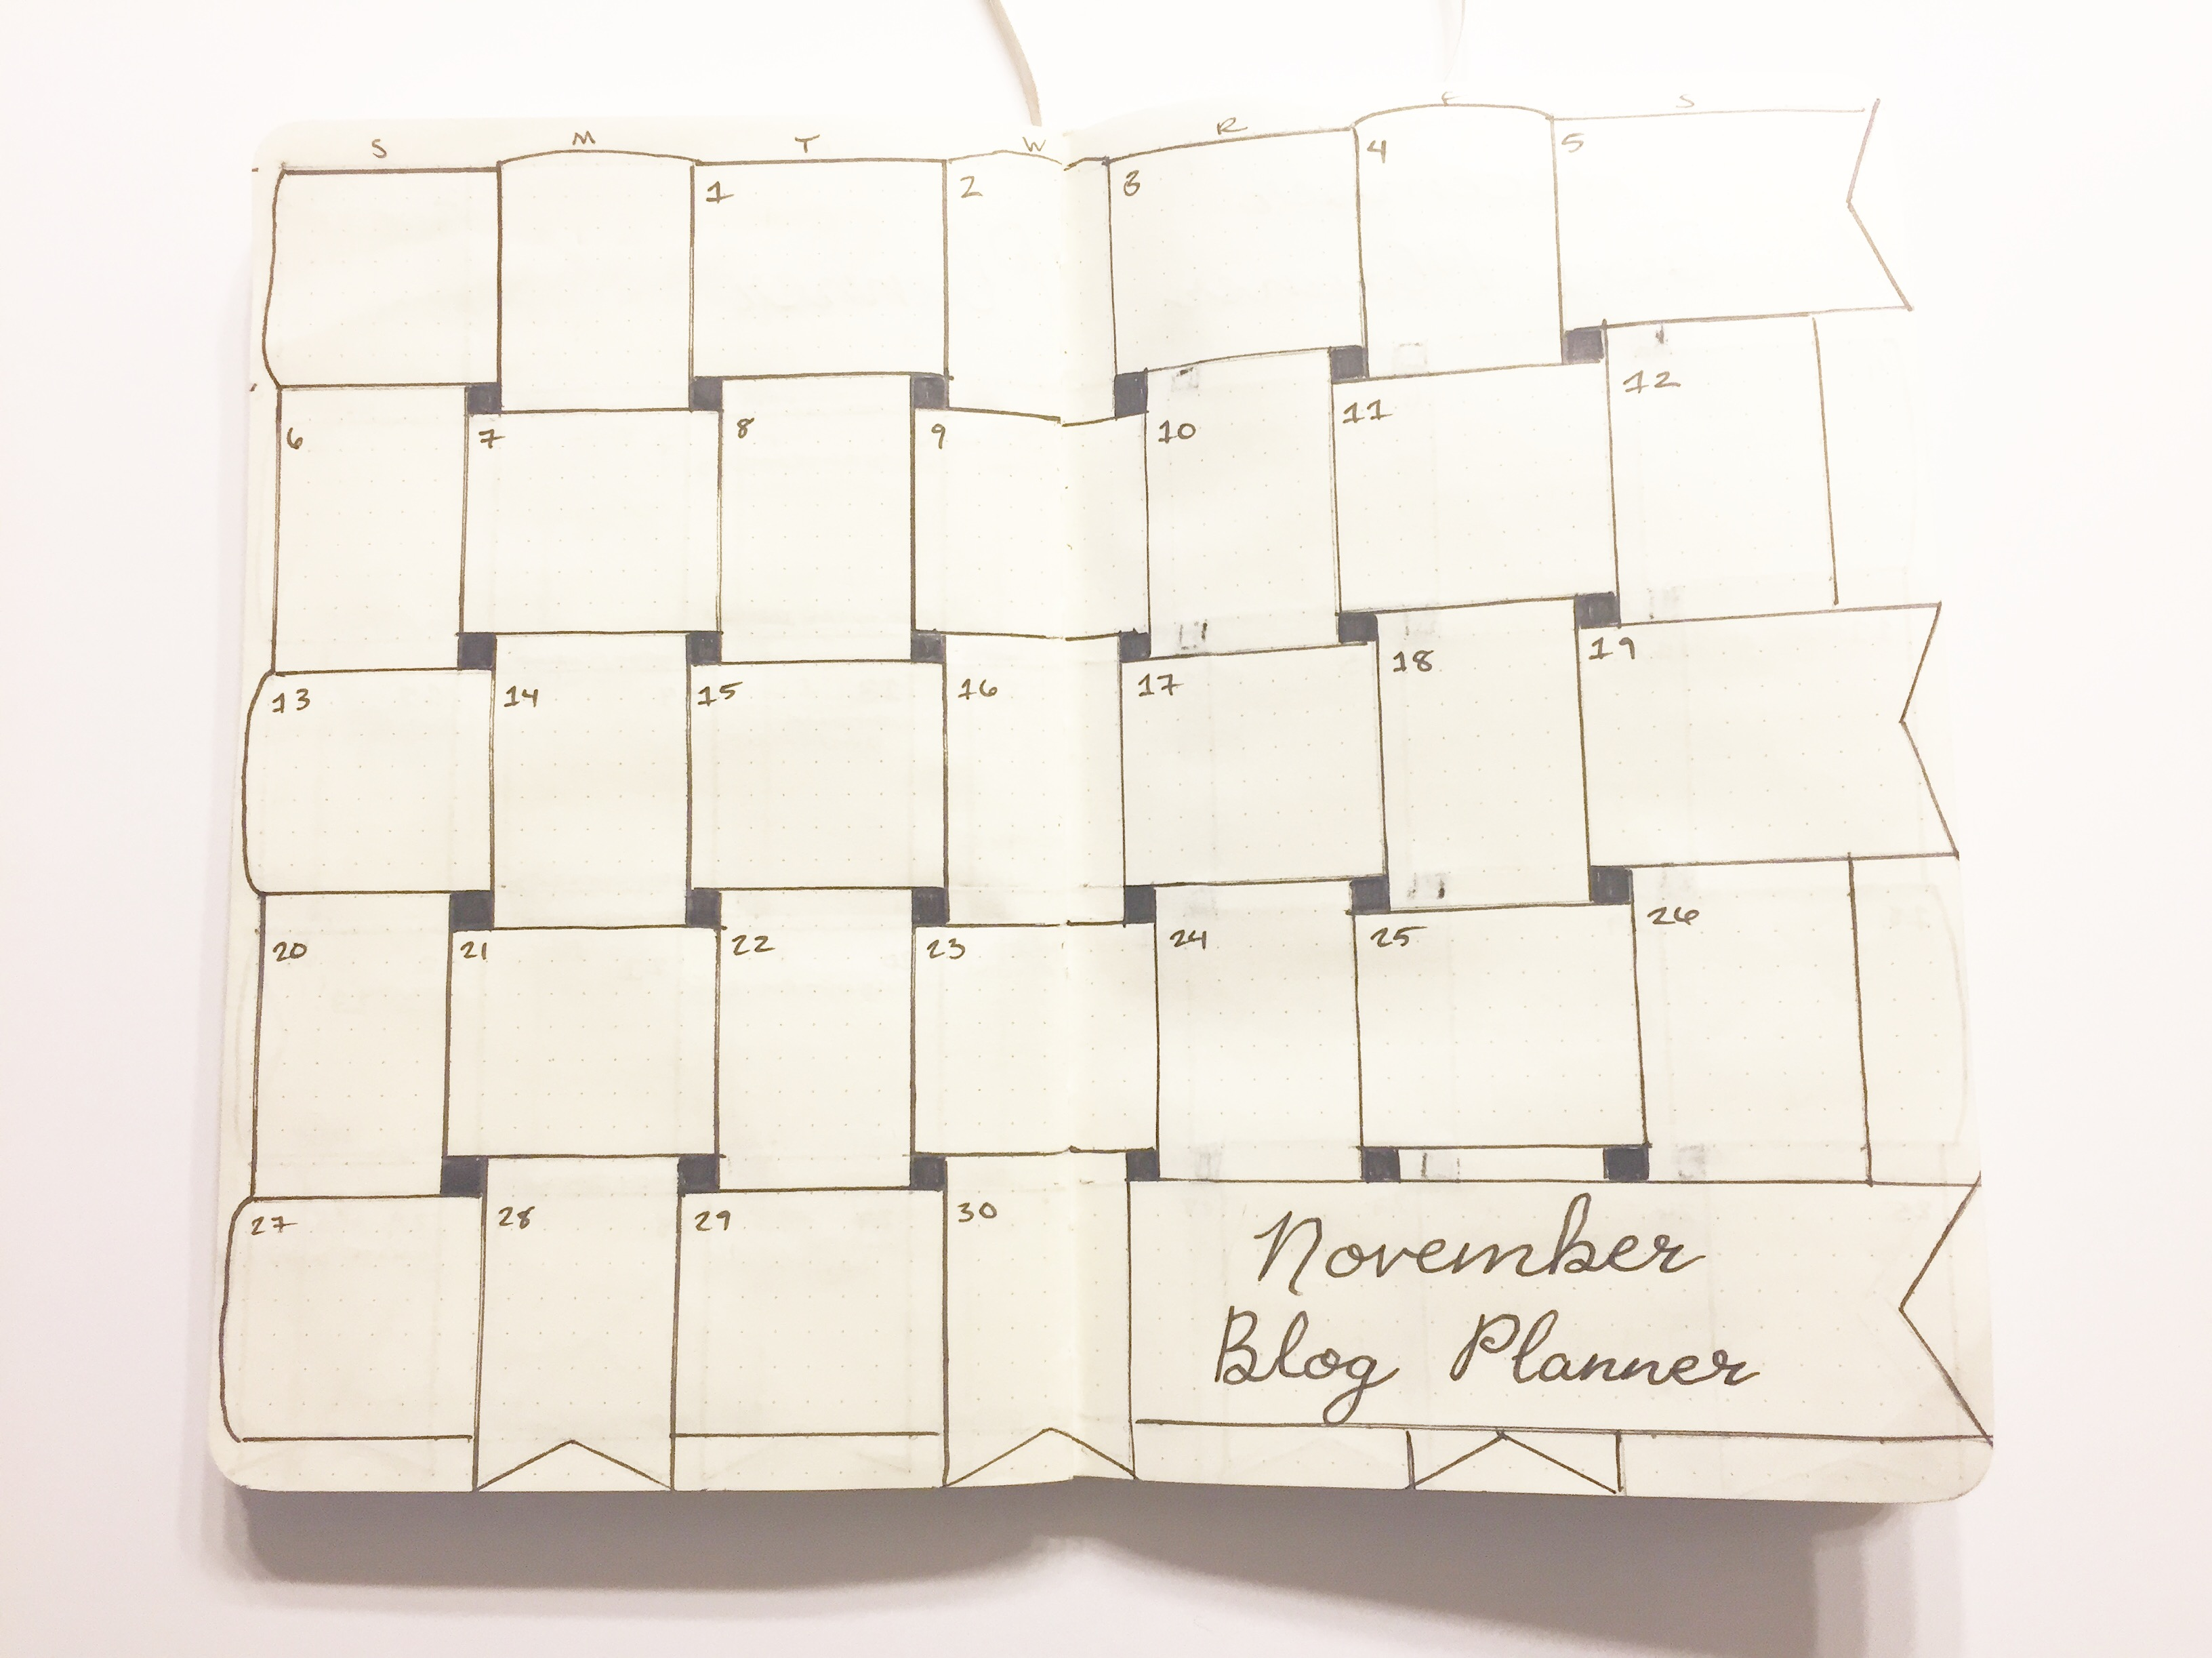 November blog post planner module pic